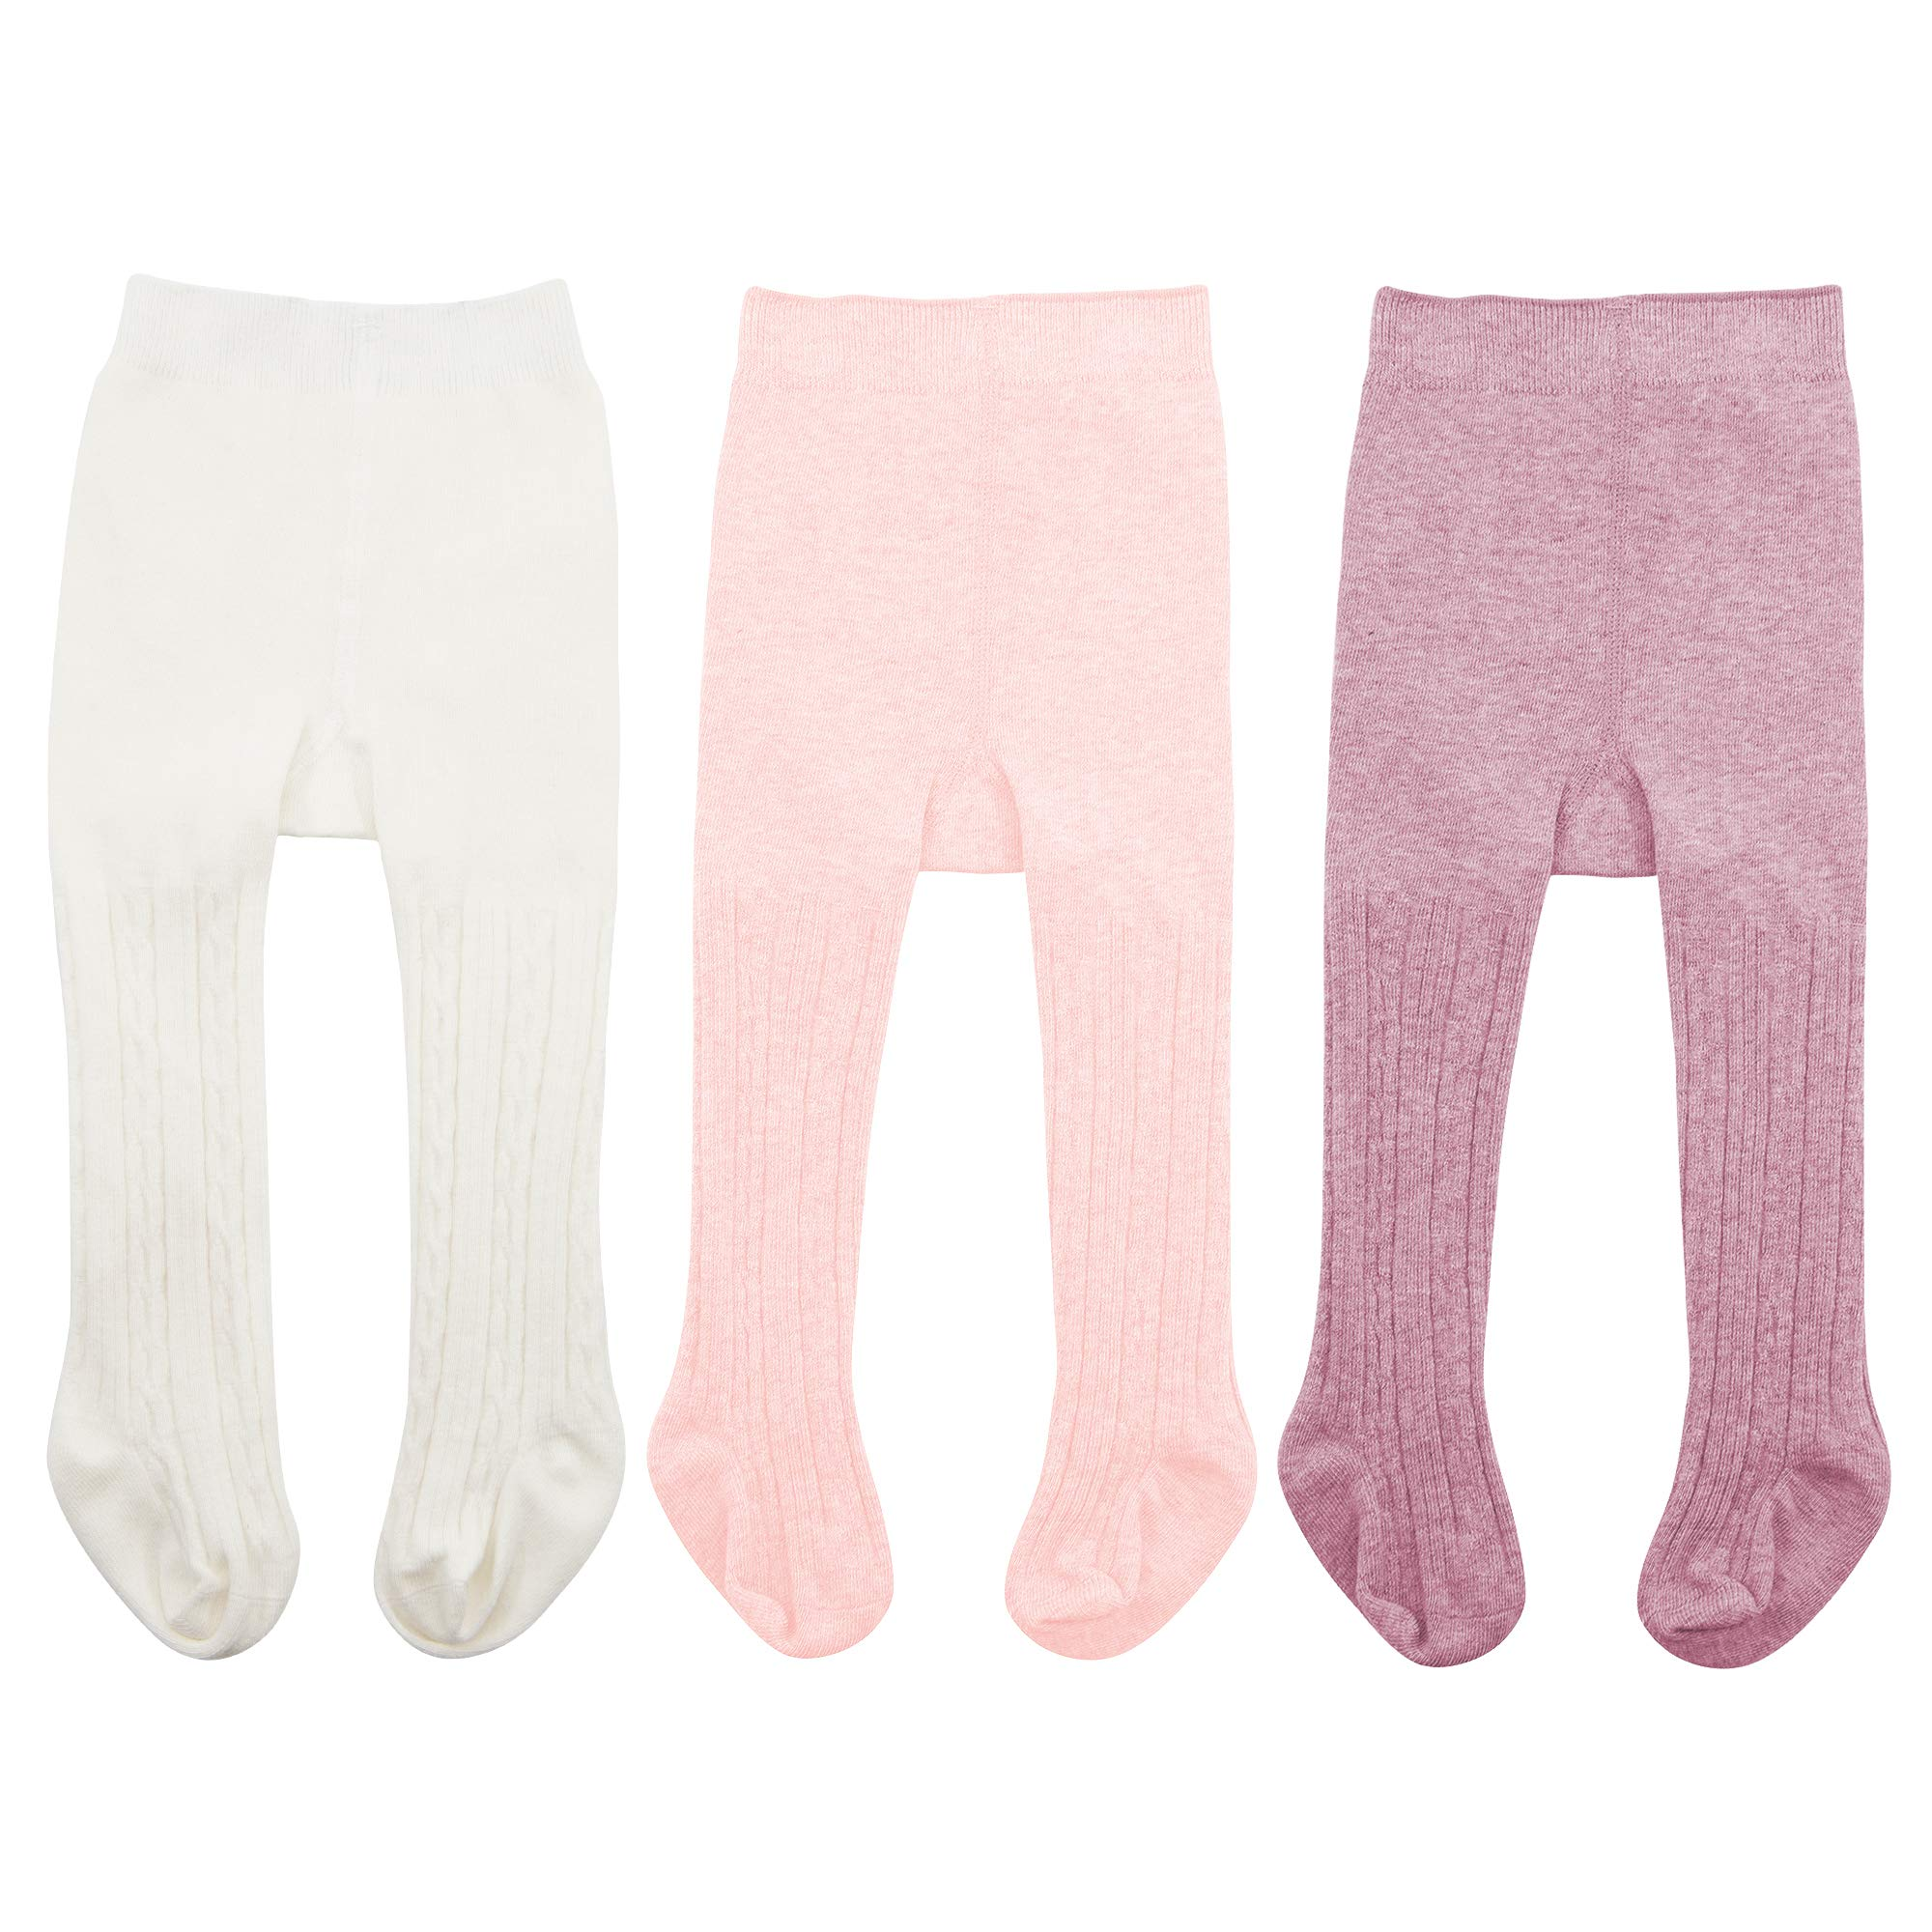 Baby Leggings - Zando Baby Girls Seamless Cable Knit Tights Infant Baby Toddler Girls Tights Knit Cotton Tight Leggings White & Ballet Pink & Purple Small / 0-6 Month